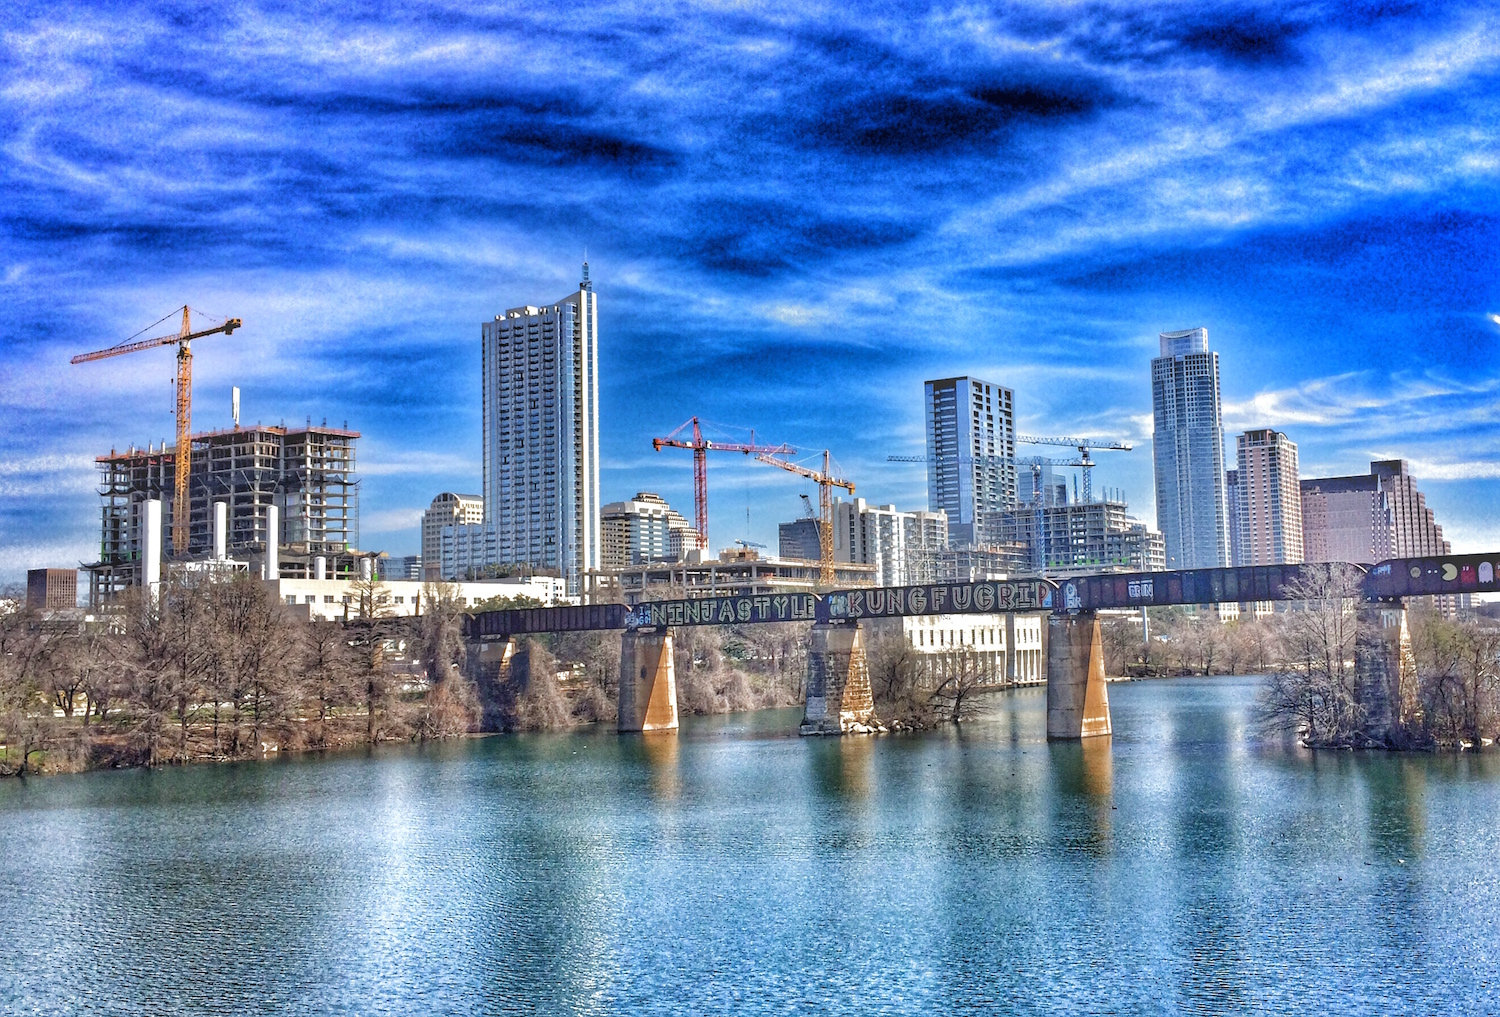 spend an unforgettable day like a tourist in austin